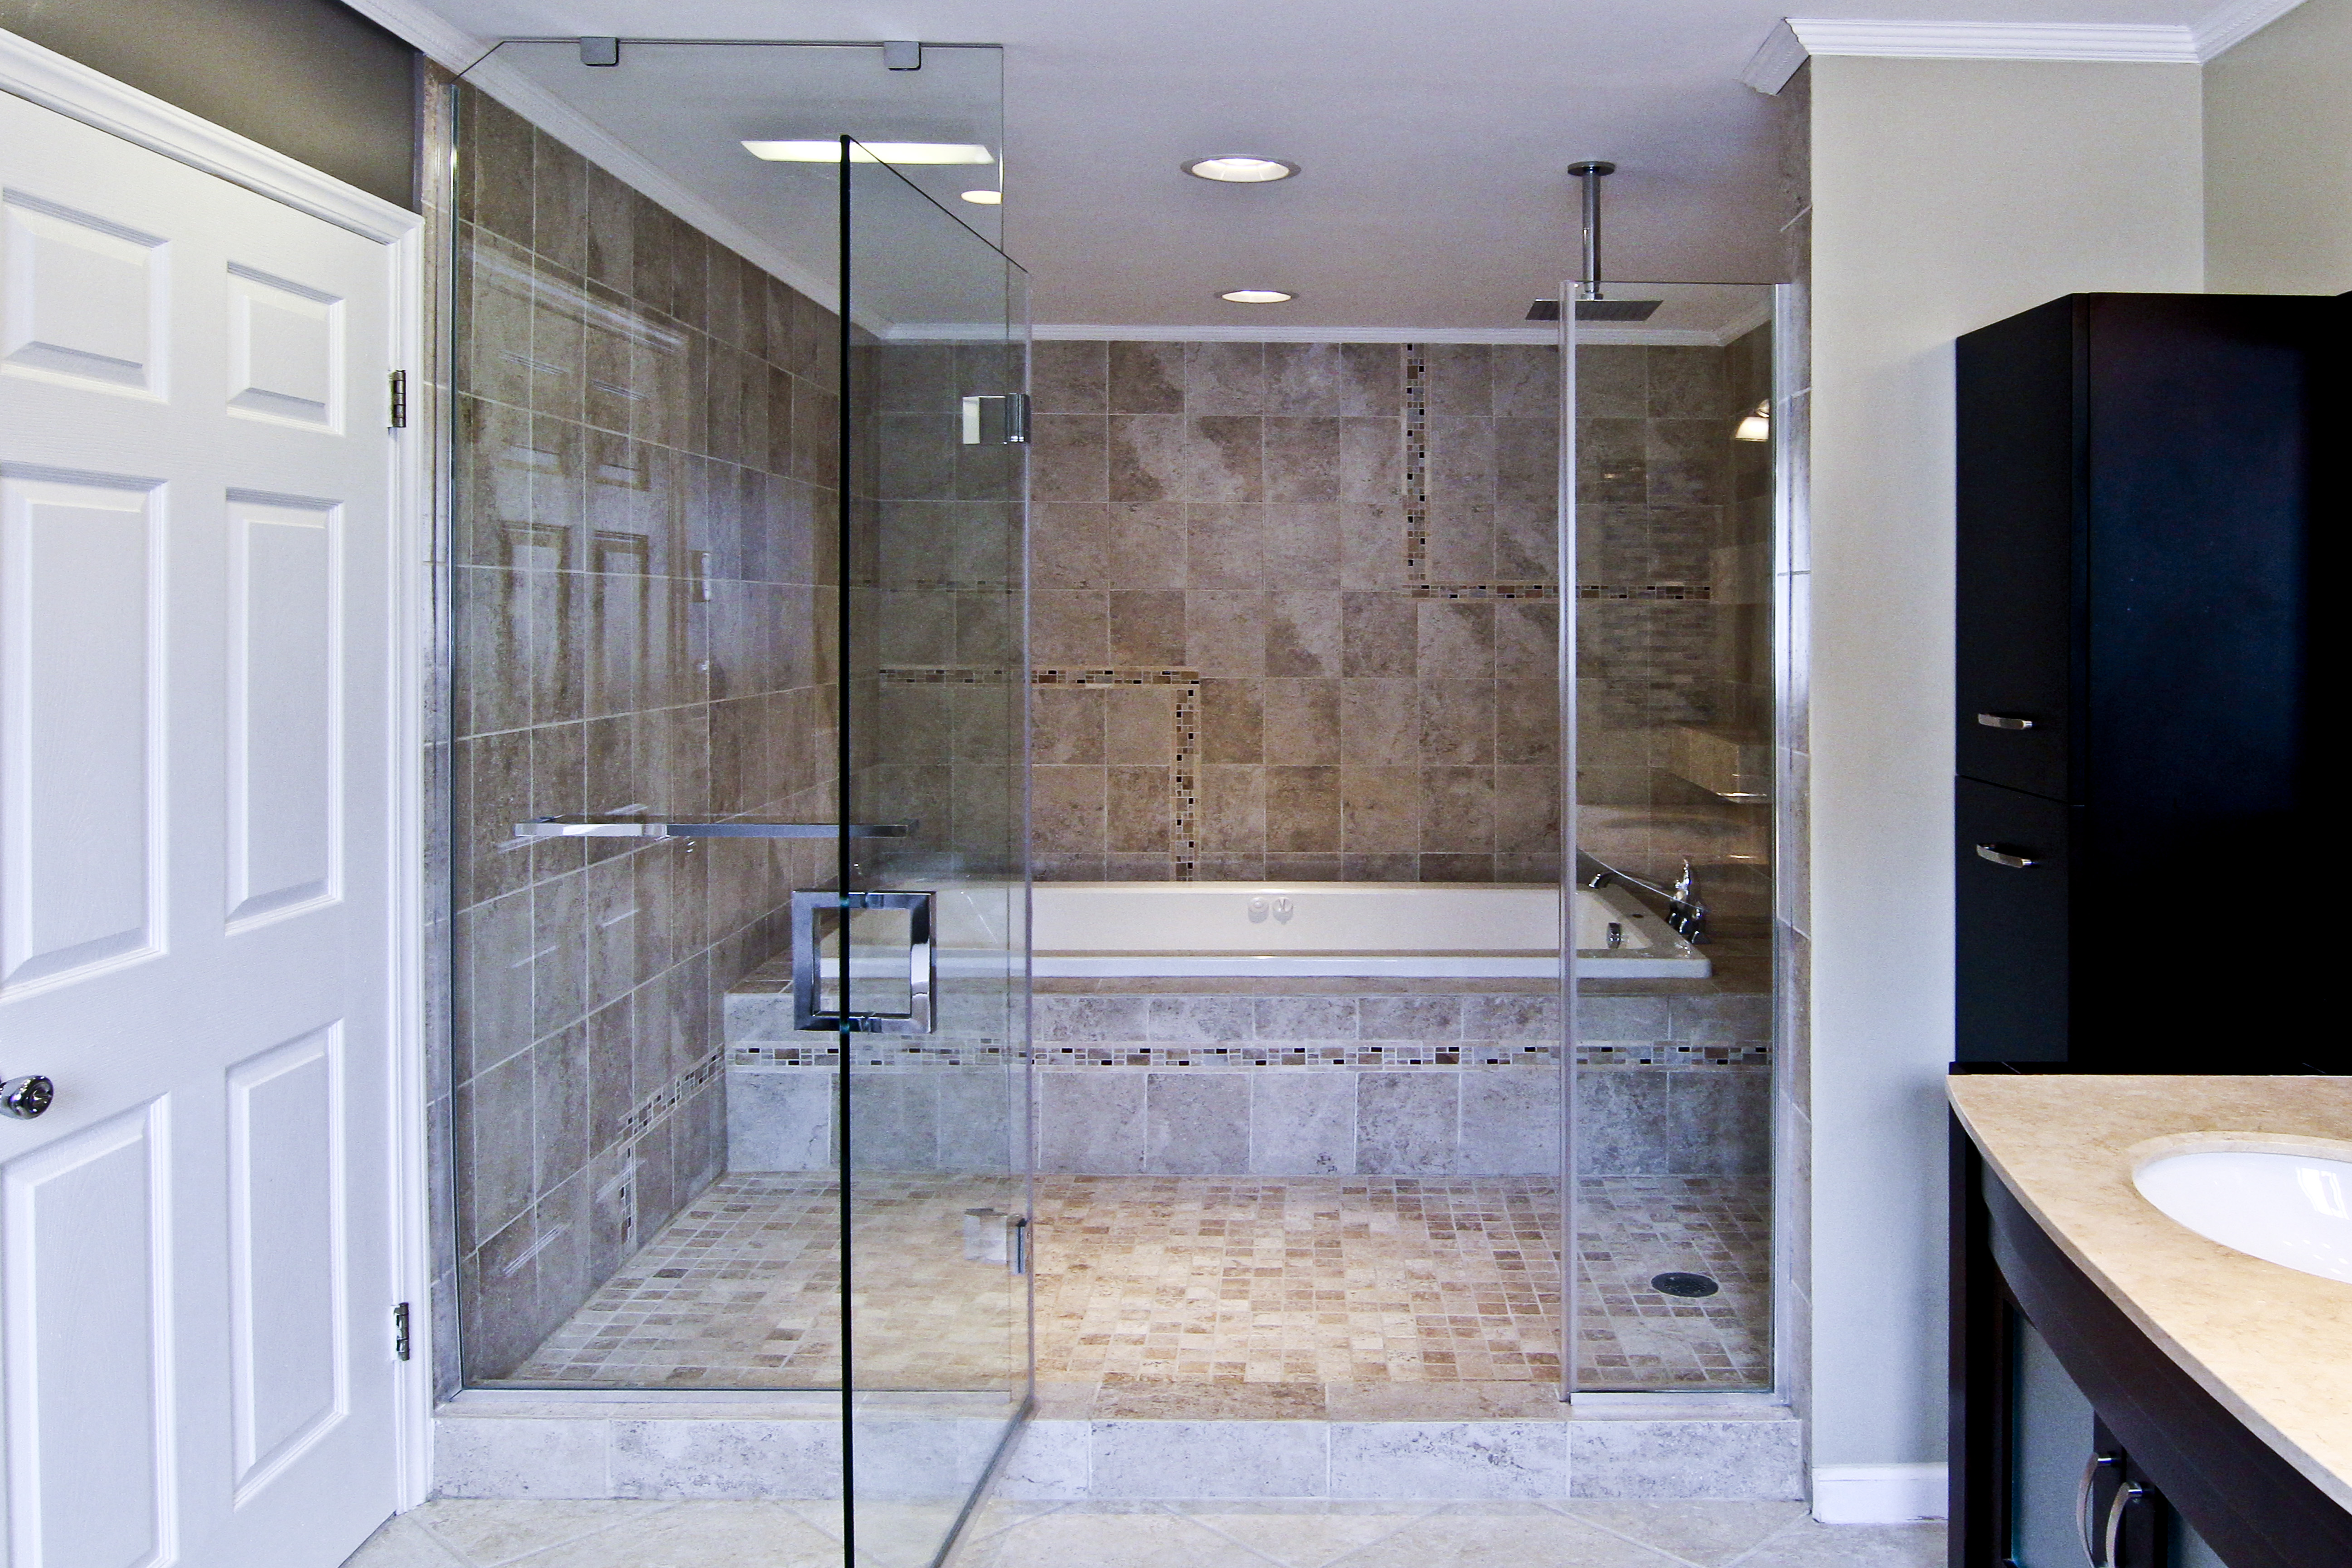 1- Frameless shower door